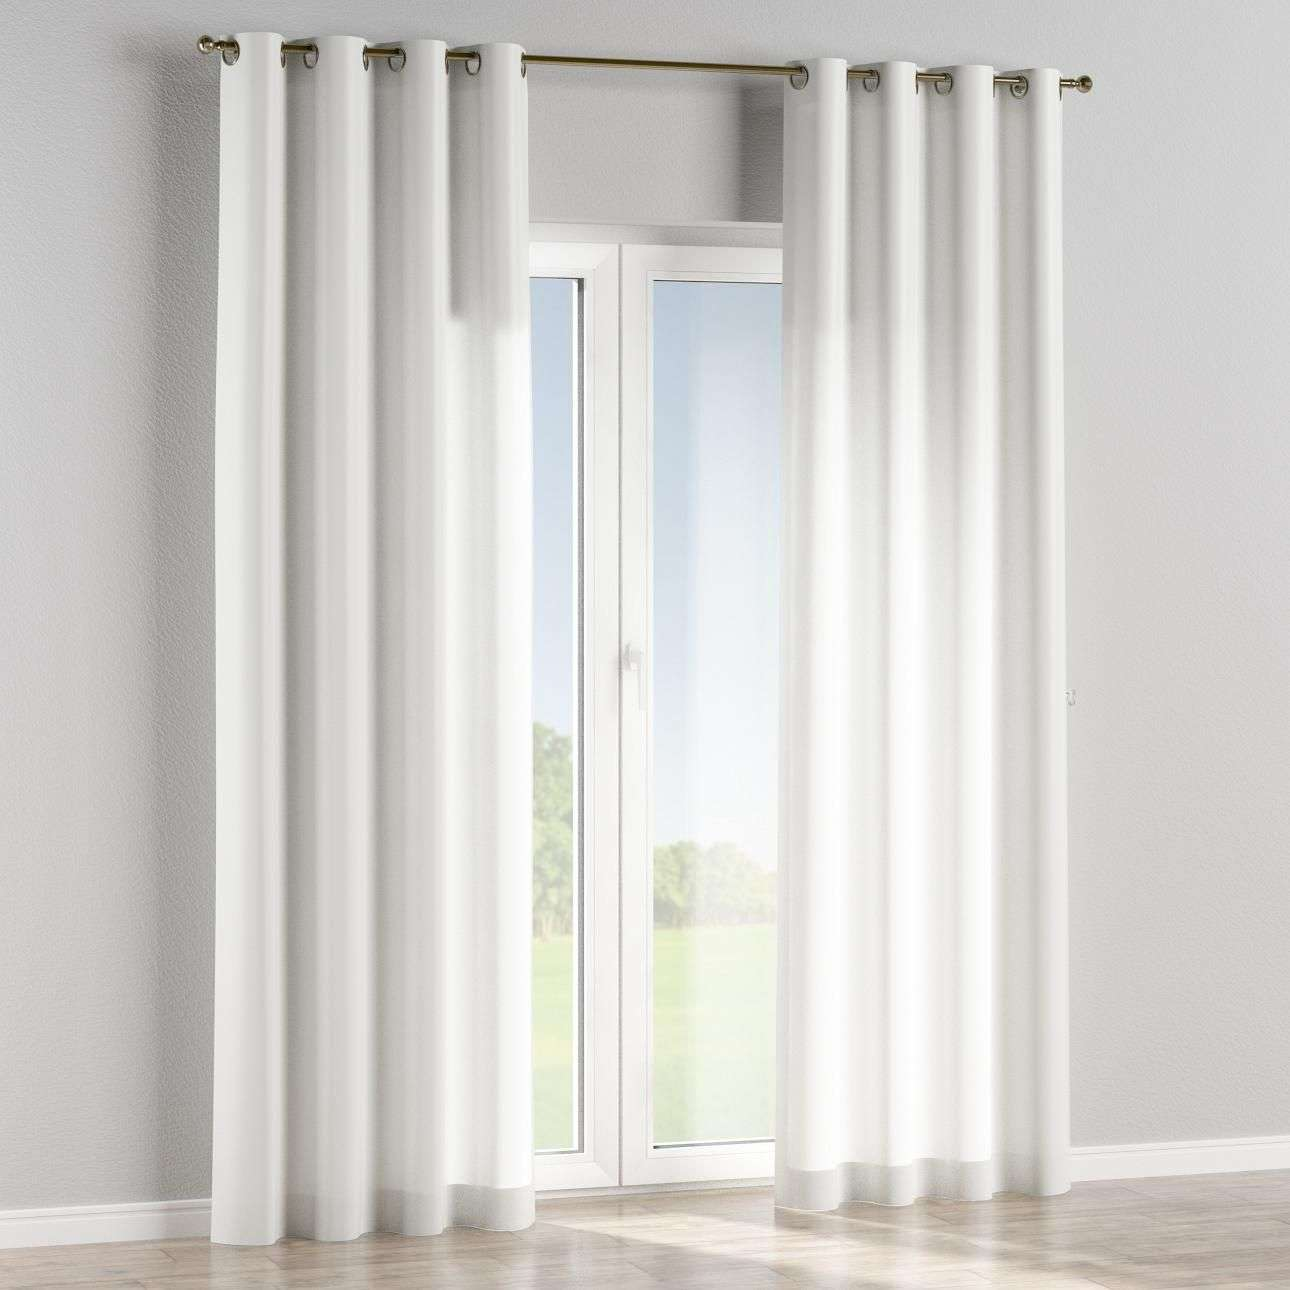 Eyelet curtains in collection Milano, fabric: 150-28